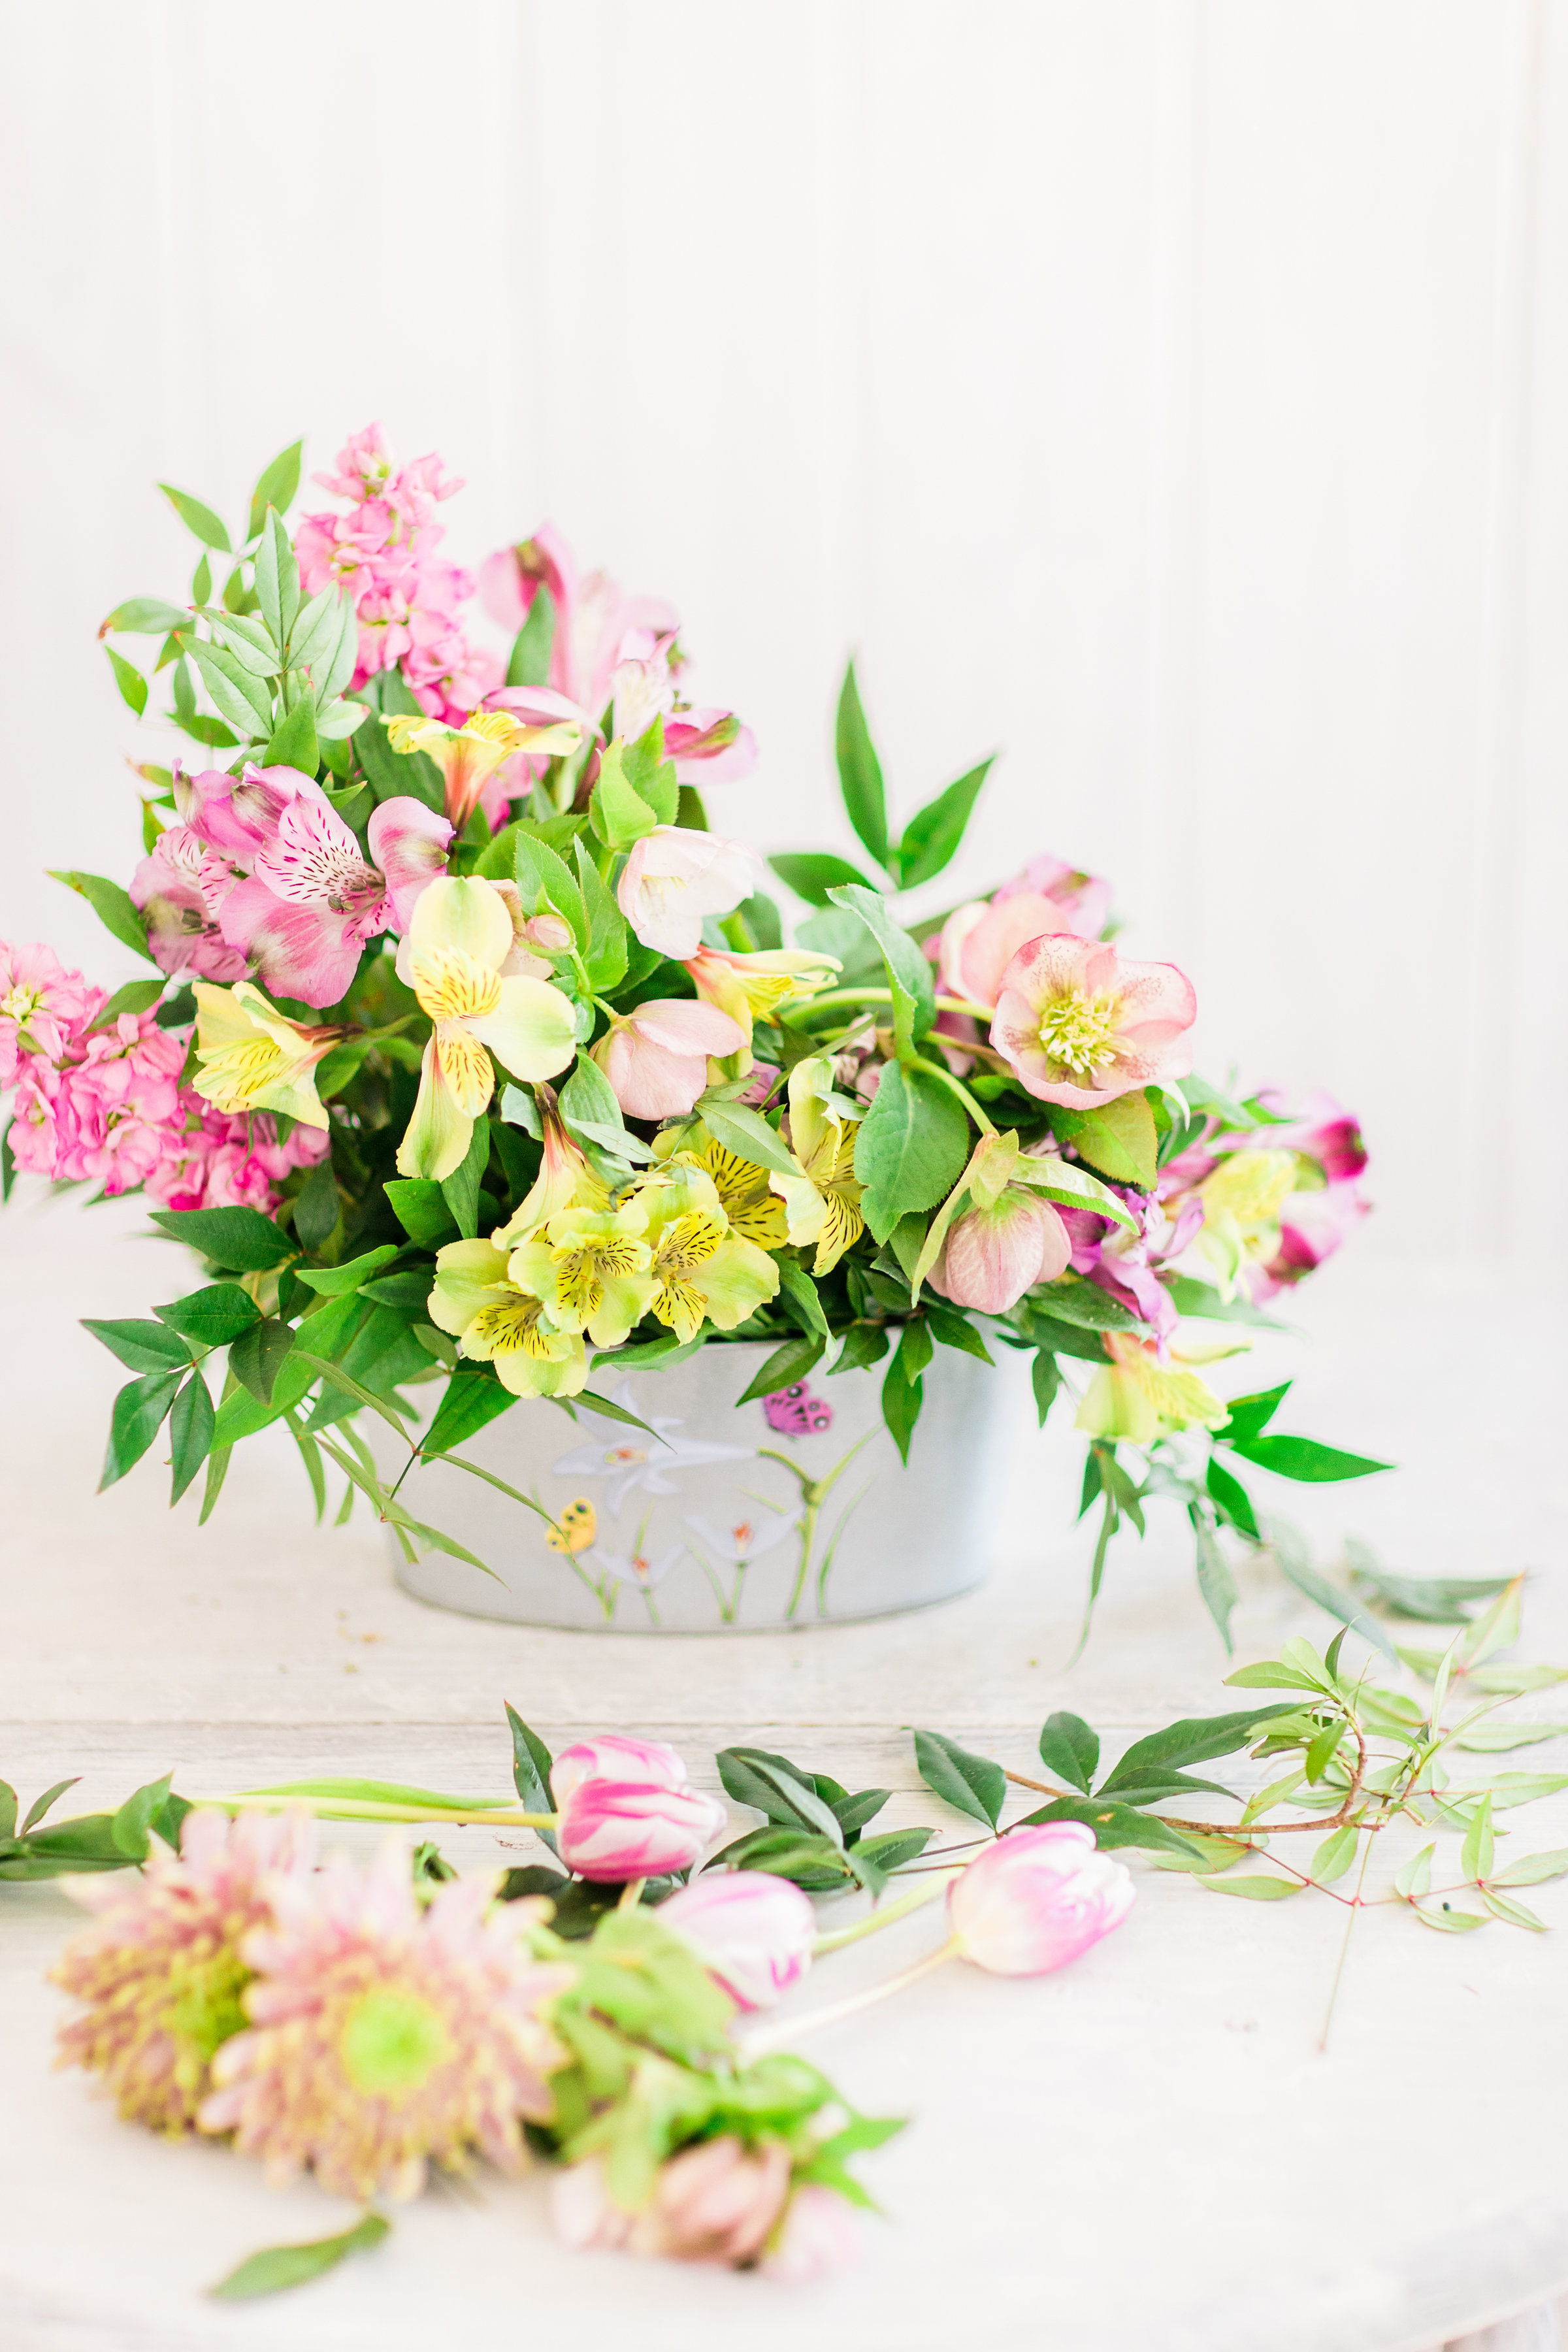 How to Make a Beautiful Spring Floral Arrangement